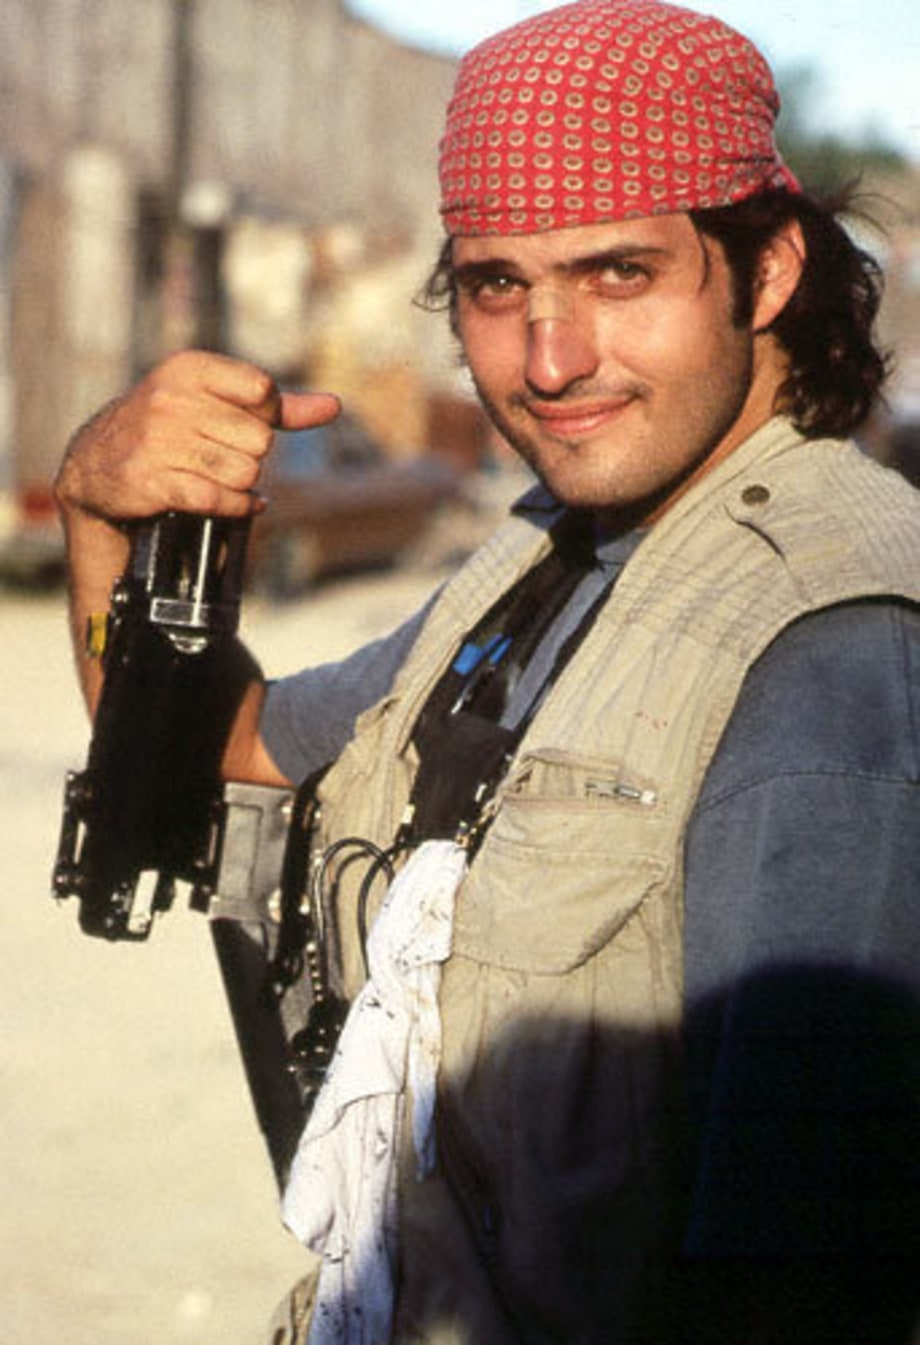 More Robert Rodriguez